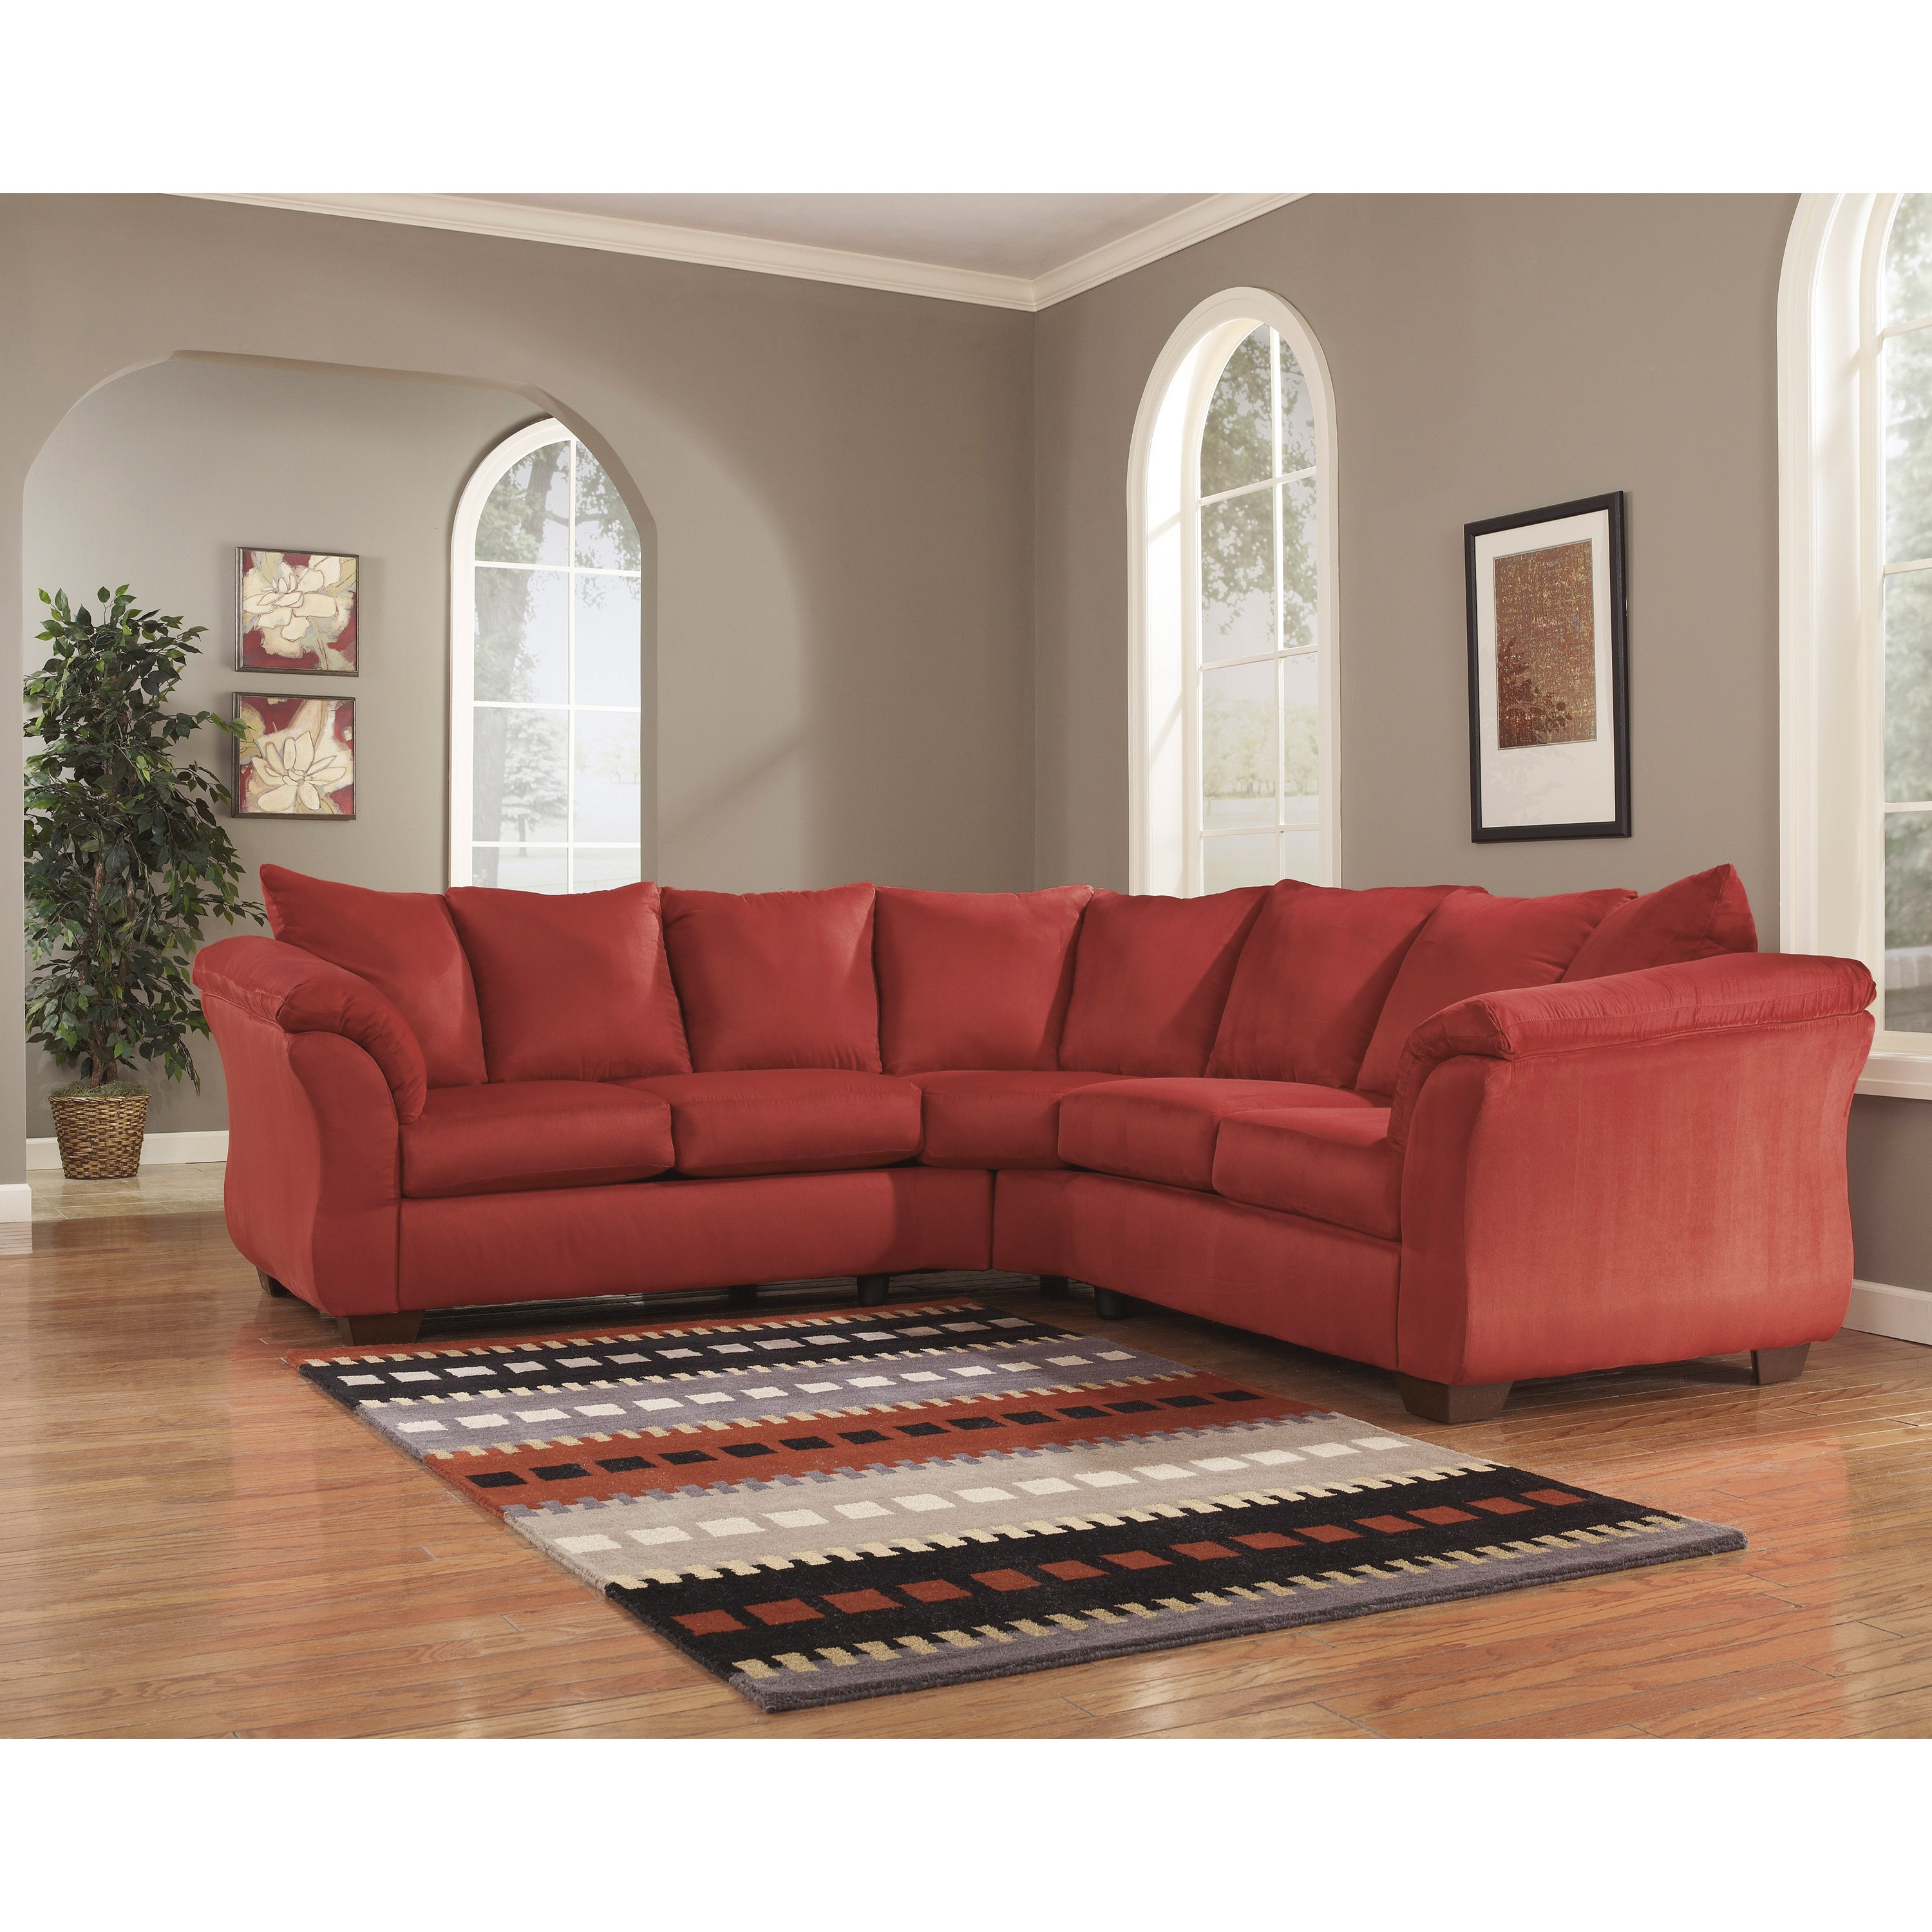 Astonishing Darcy 2 Piece Salsa Loveseat Sectional Alphanode Cool Chair Designs And Ideas Alphanodeonline